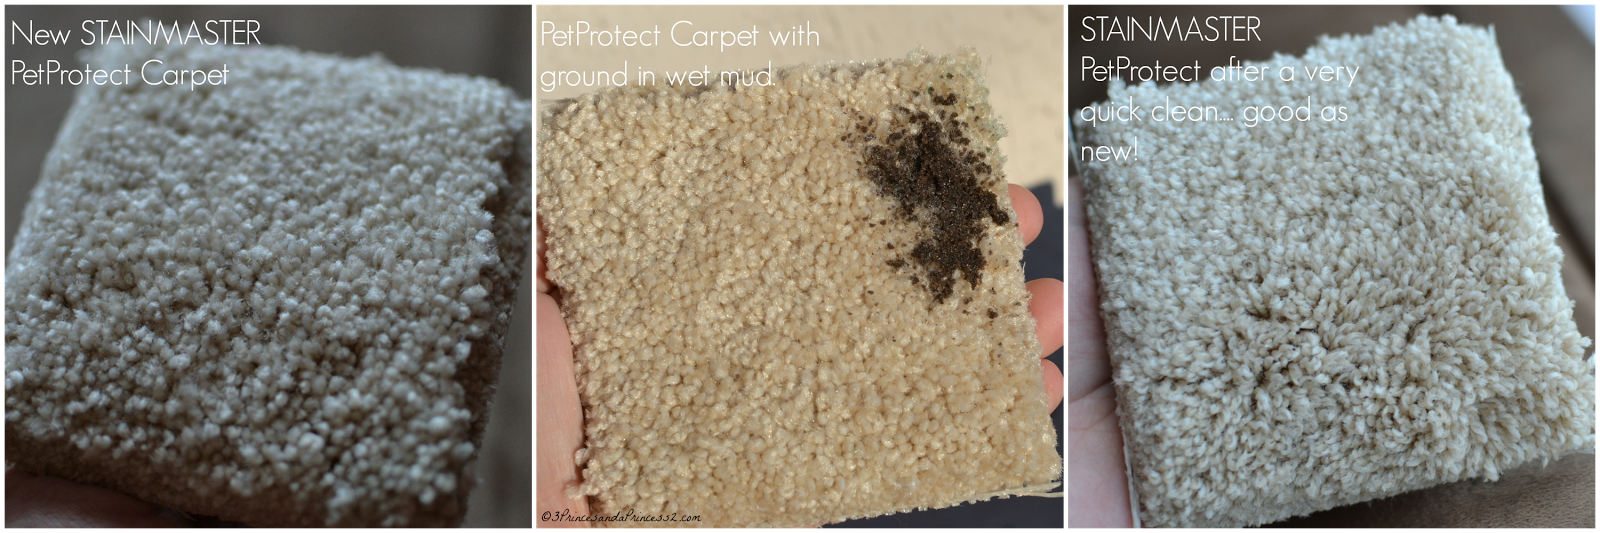 STAINMASTER PetProtect Carpet Helps #UnShameYourPet #MC (Sponsored)